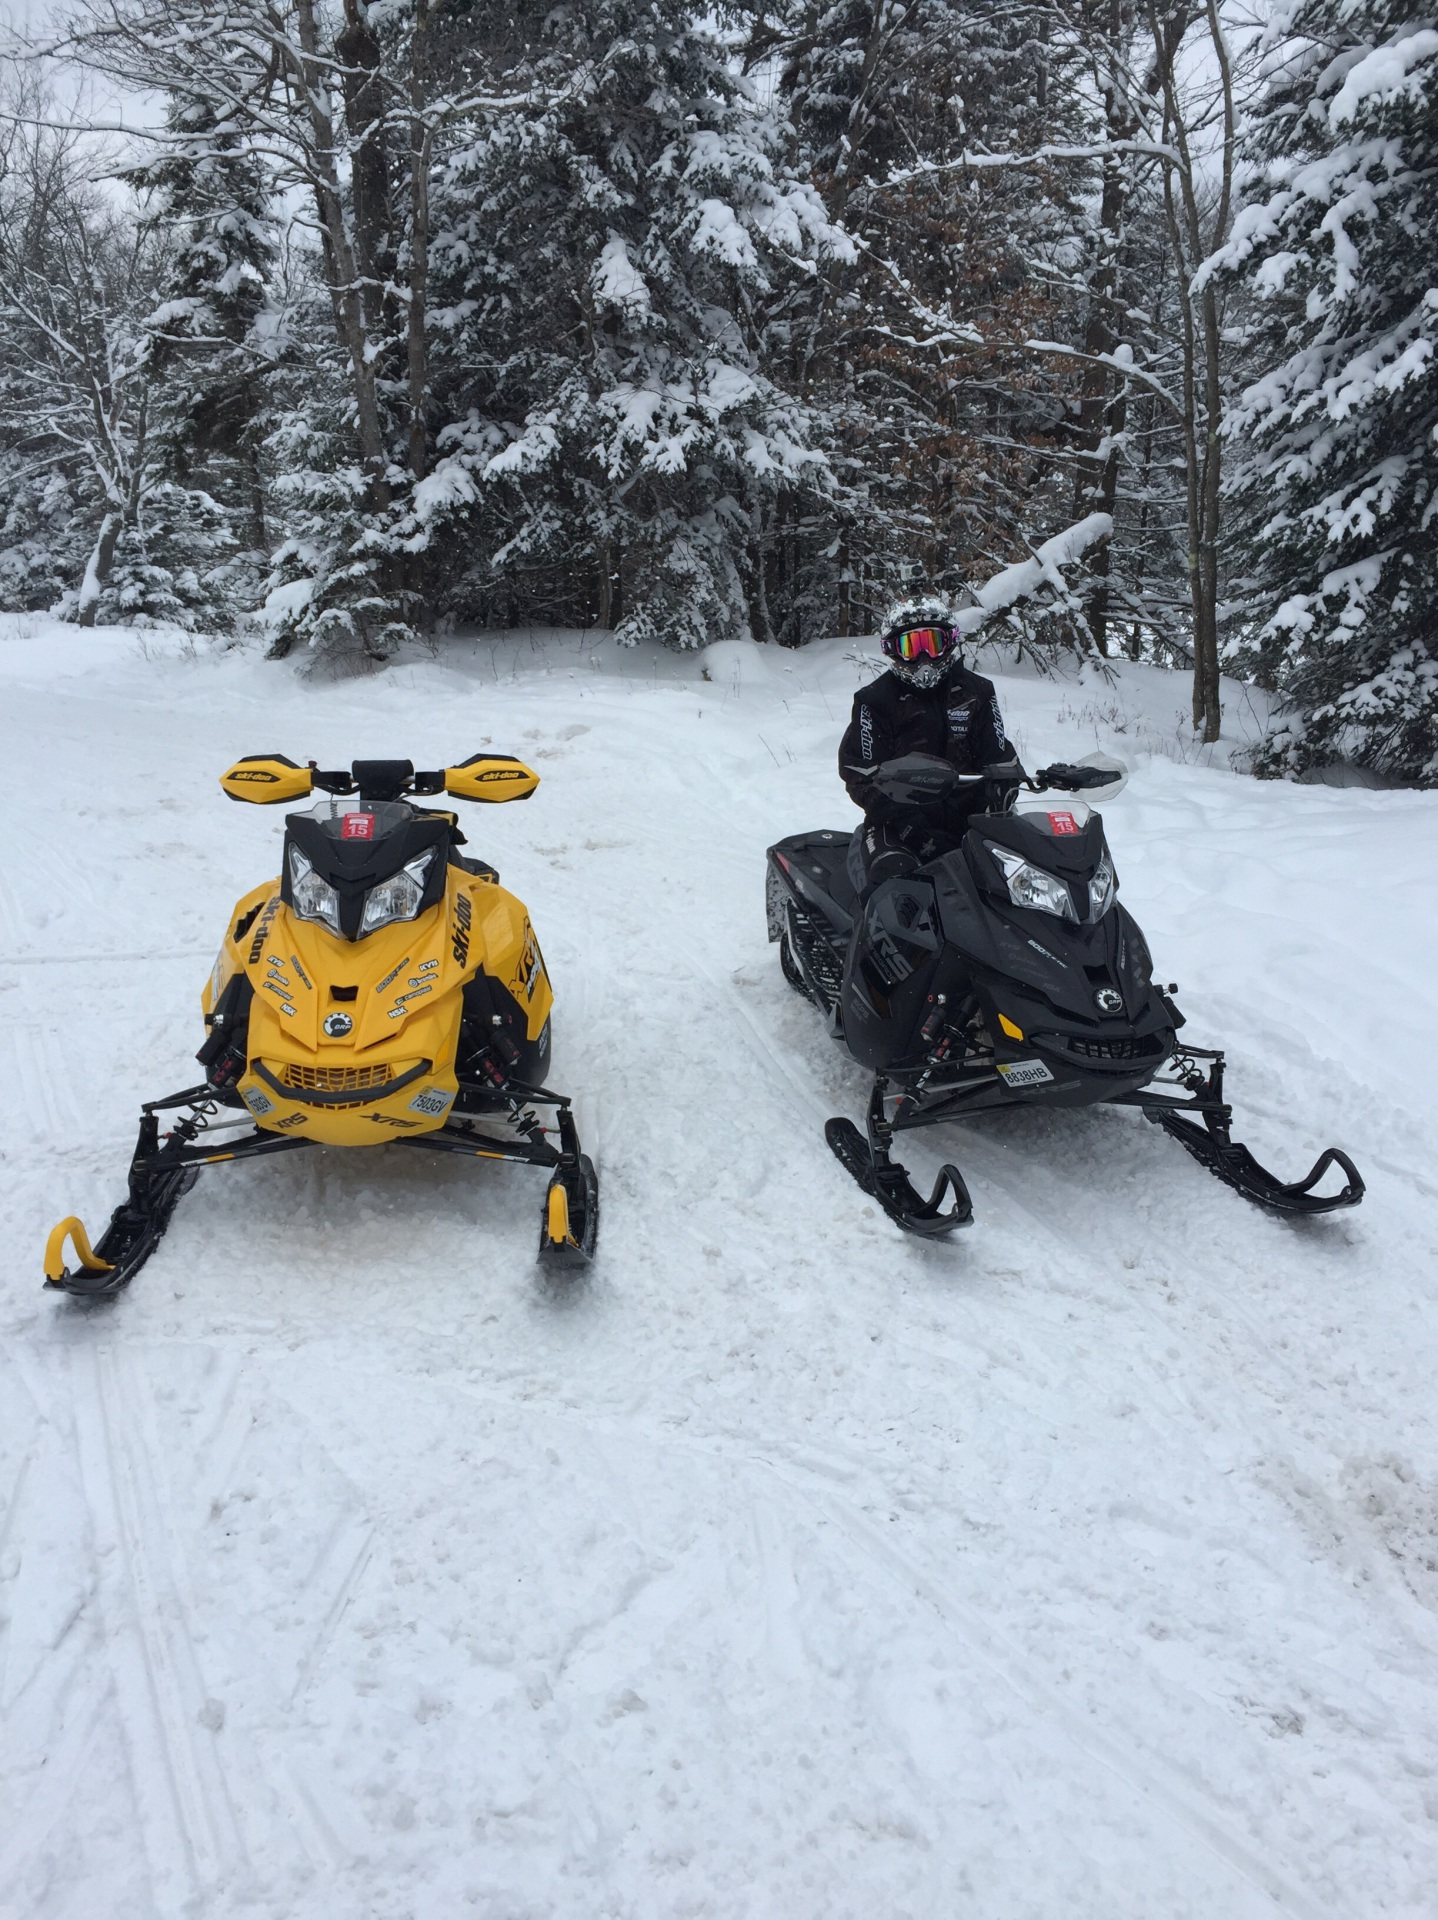 2 snowmobiles and a women